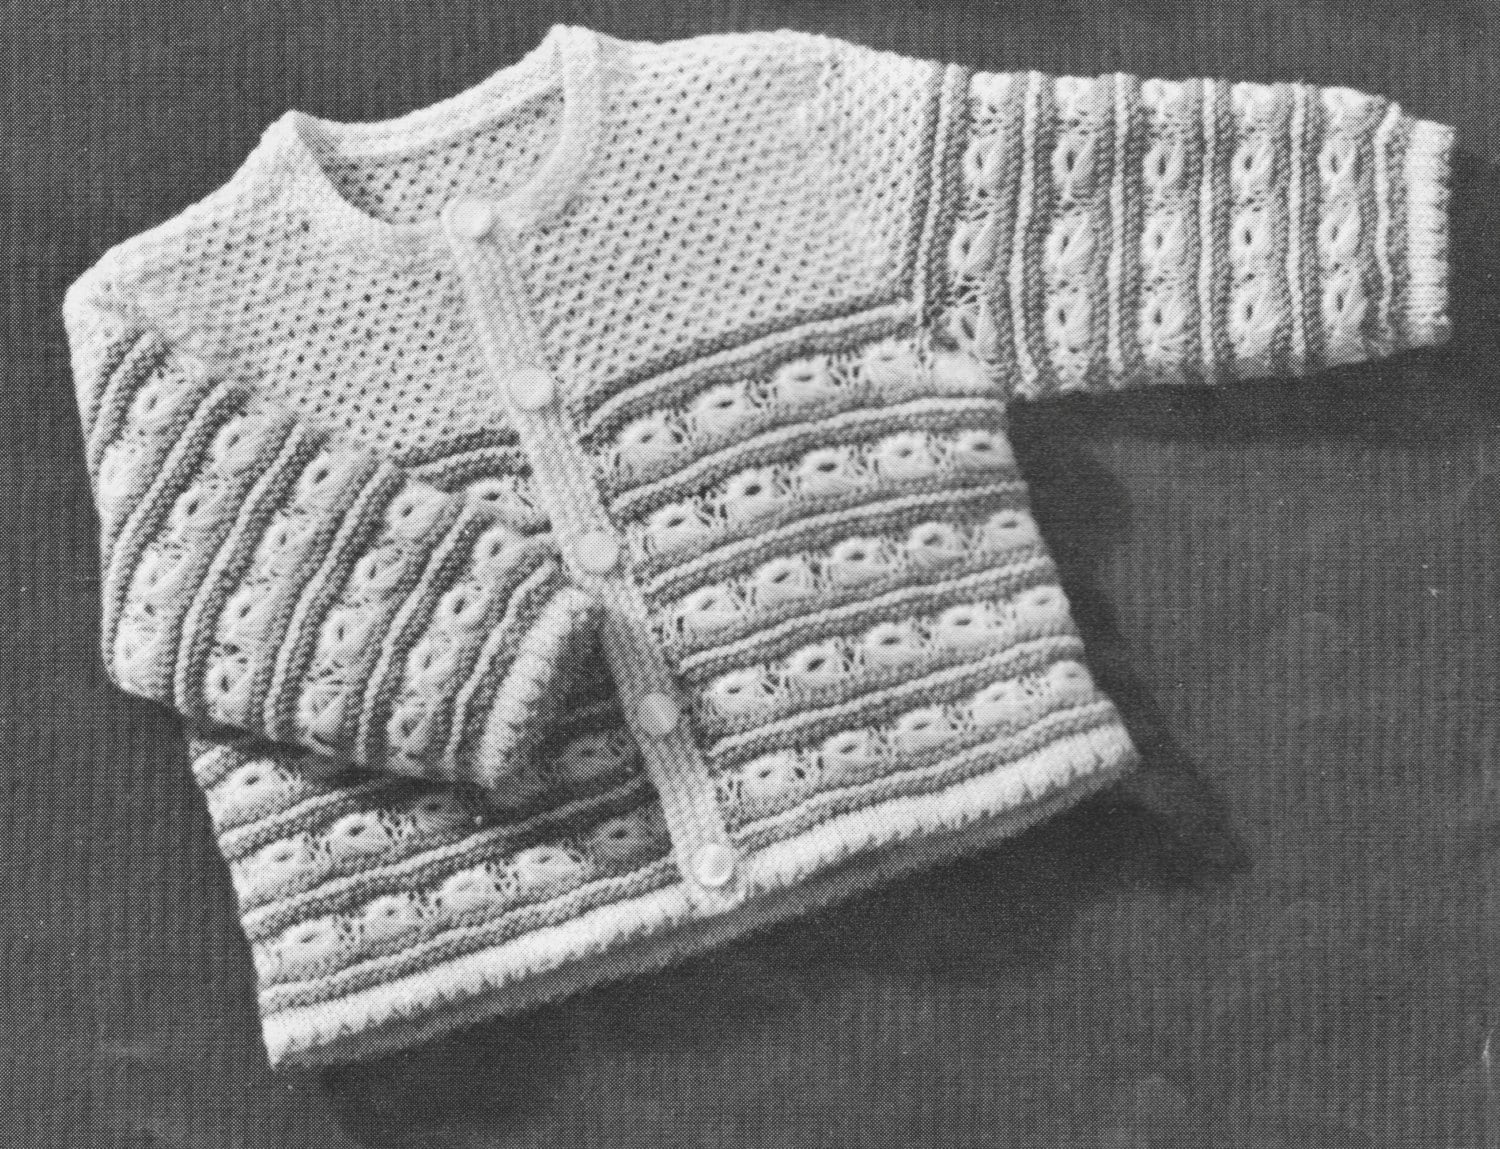 394 Vintage 1940\'s Baby Sweater Knitting Pattern, Baby\'s Cardigan ...